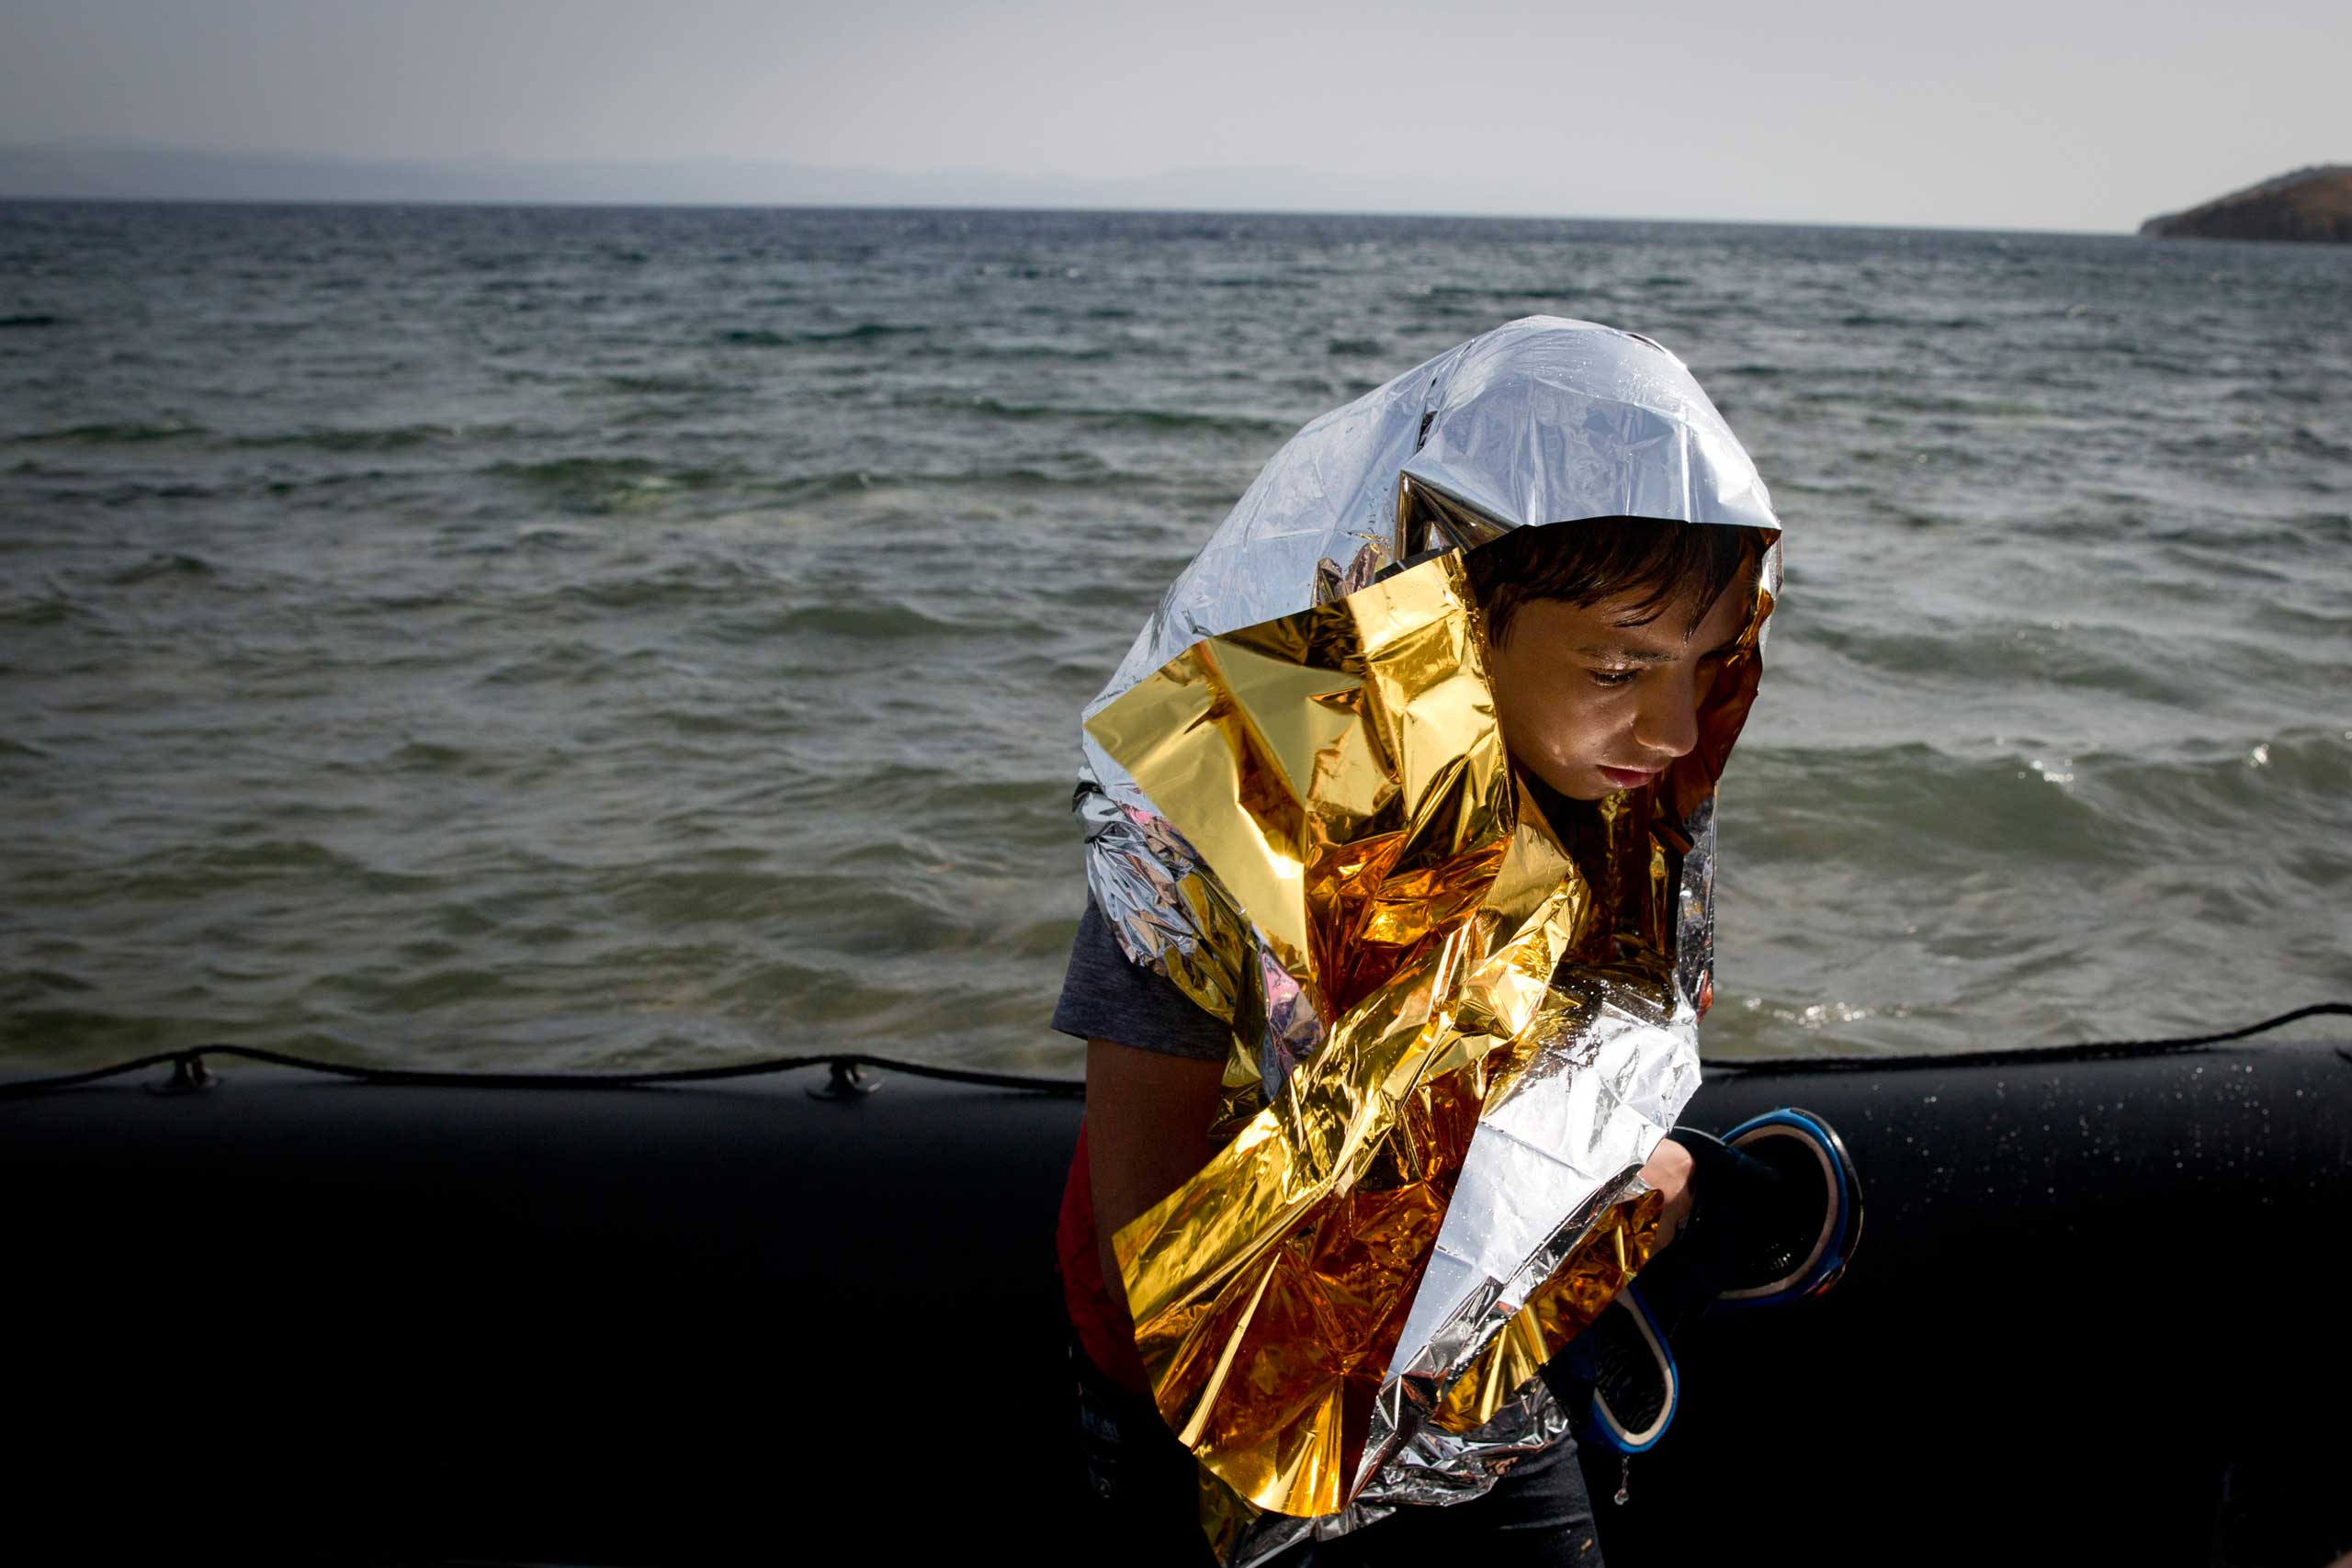 A young Syrian boy is wrapped with a thermal blanket as he arrives with others at the coast on a dinghy after crossing from Turkey, at the island of Lesbos, Greece, on Sept. 7, 2015.